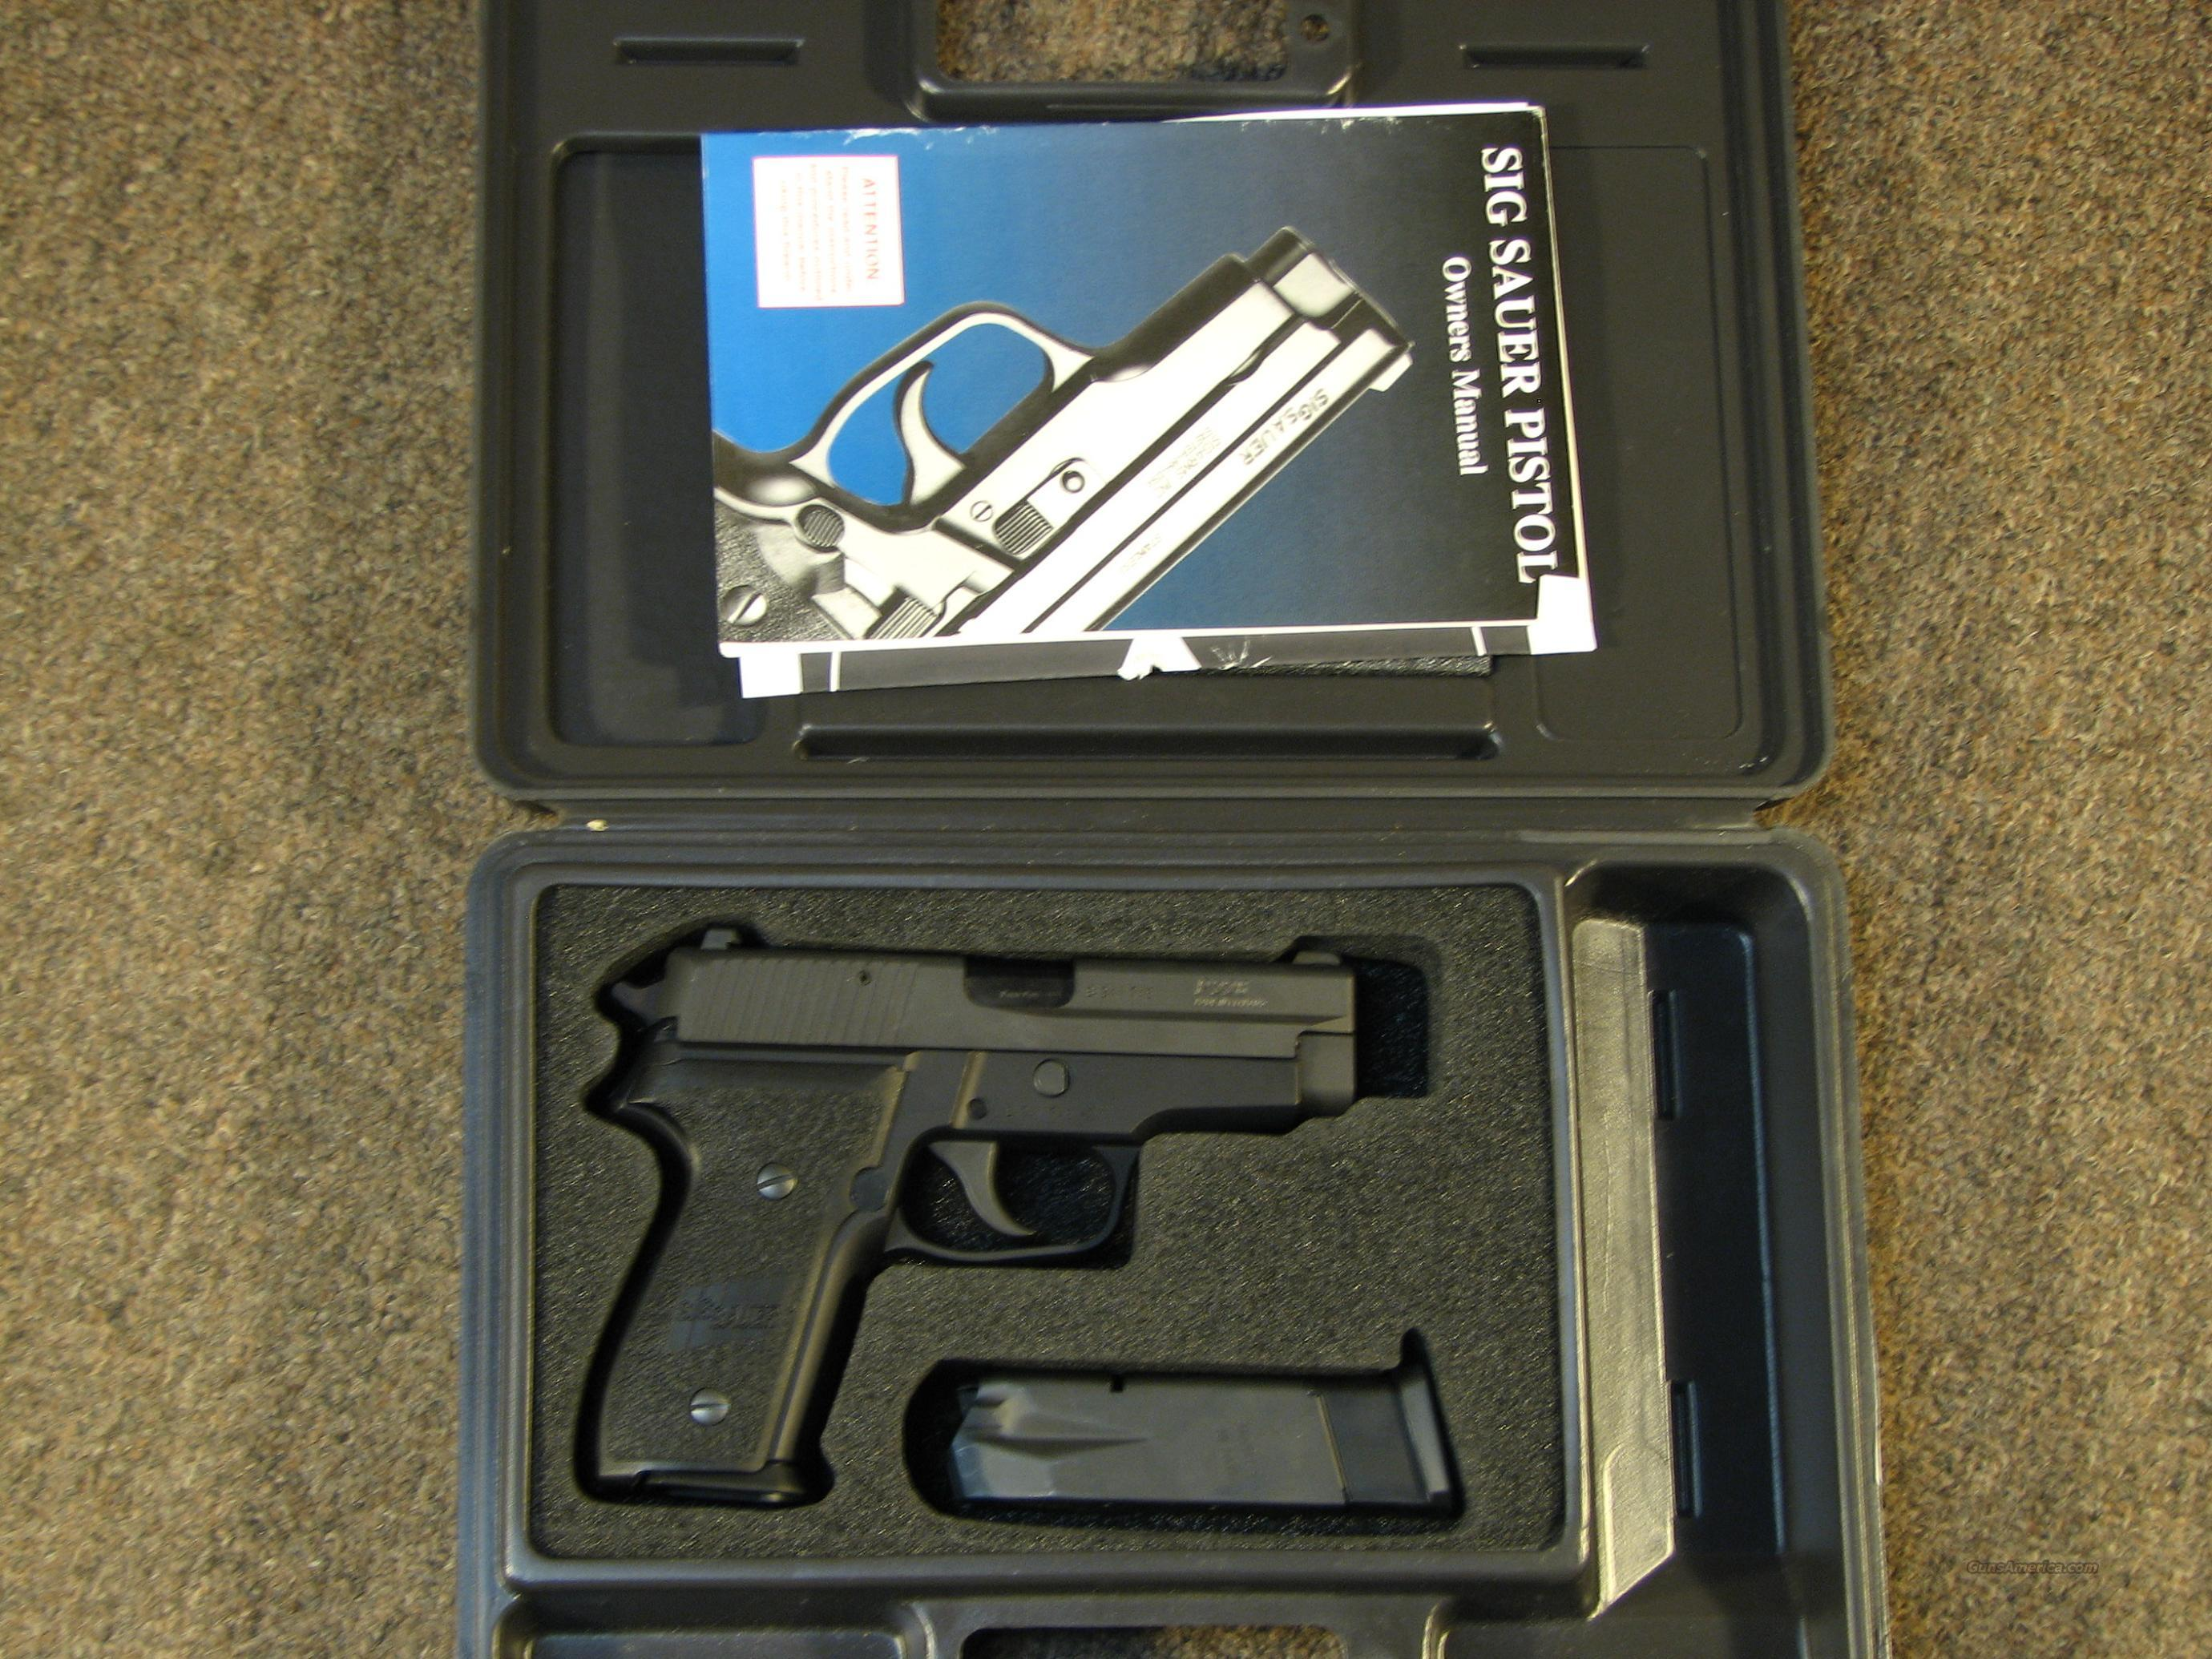 SIG SAUER P228 9MM - LIKE NEW w/ TRIJICON NIGHT SIGHTS & 2 MAGS  Guns > Pistols > Sig - Sauer/Sigarms Pistols > P228